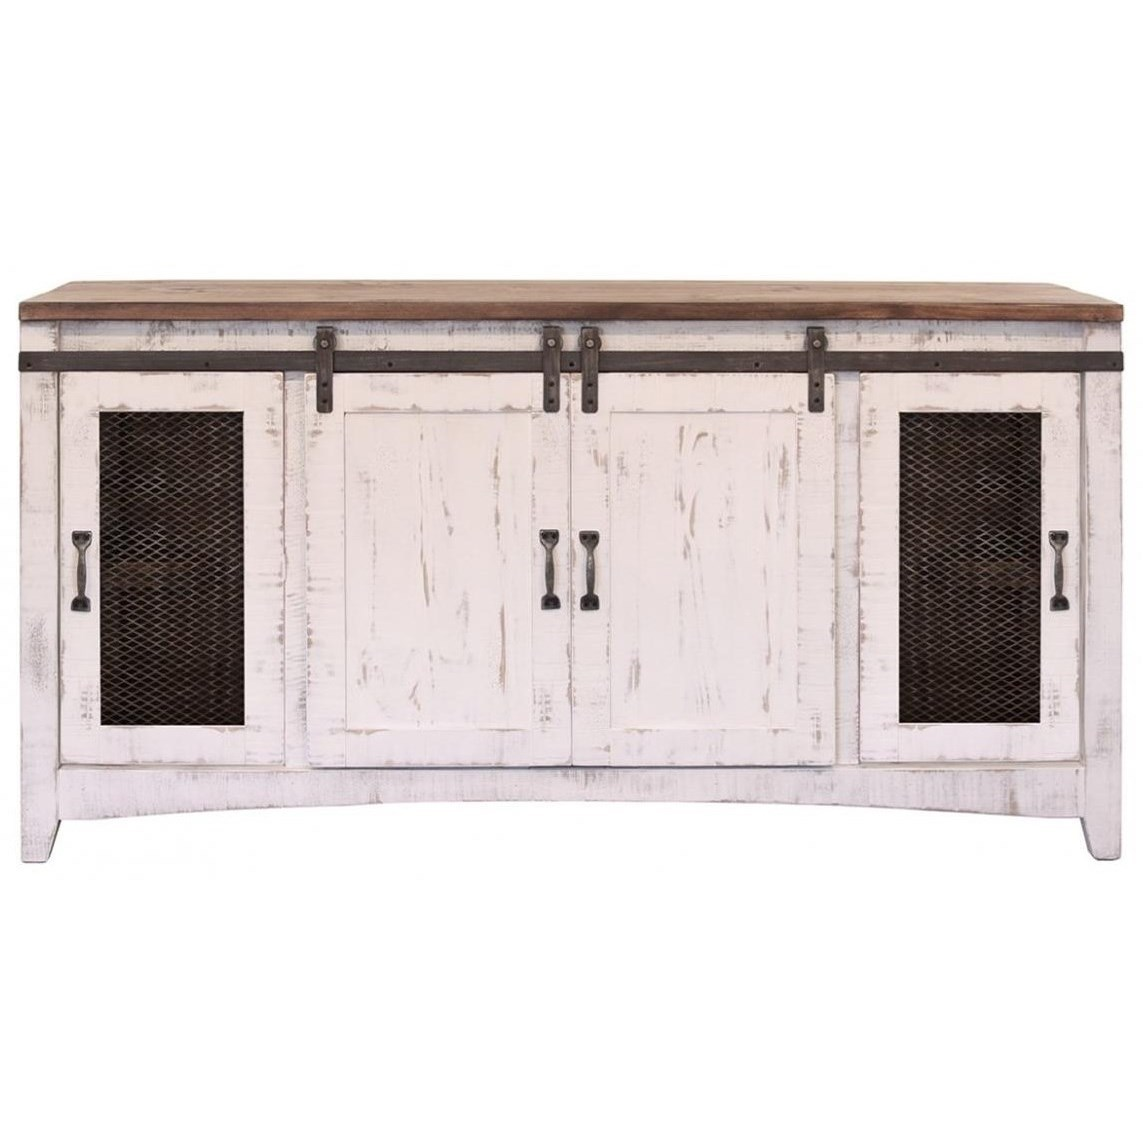 Pueblo TV Stand by International Furniture Direct at Michael Alan Furniture & Design